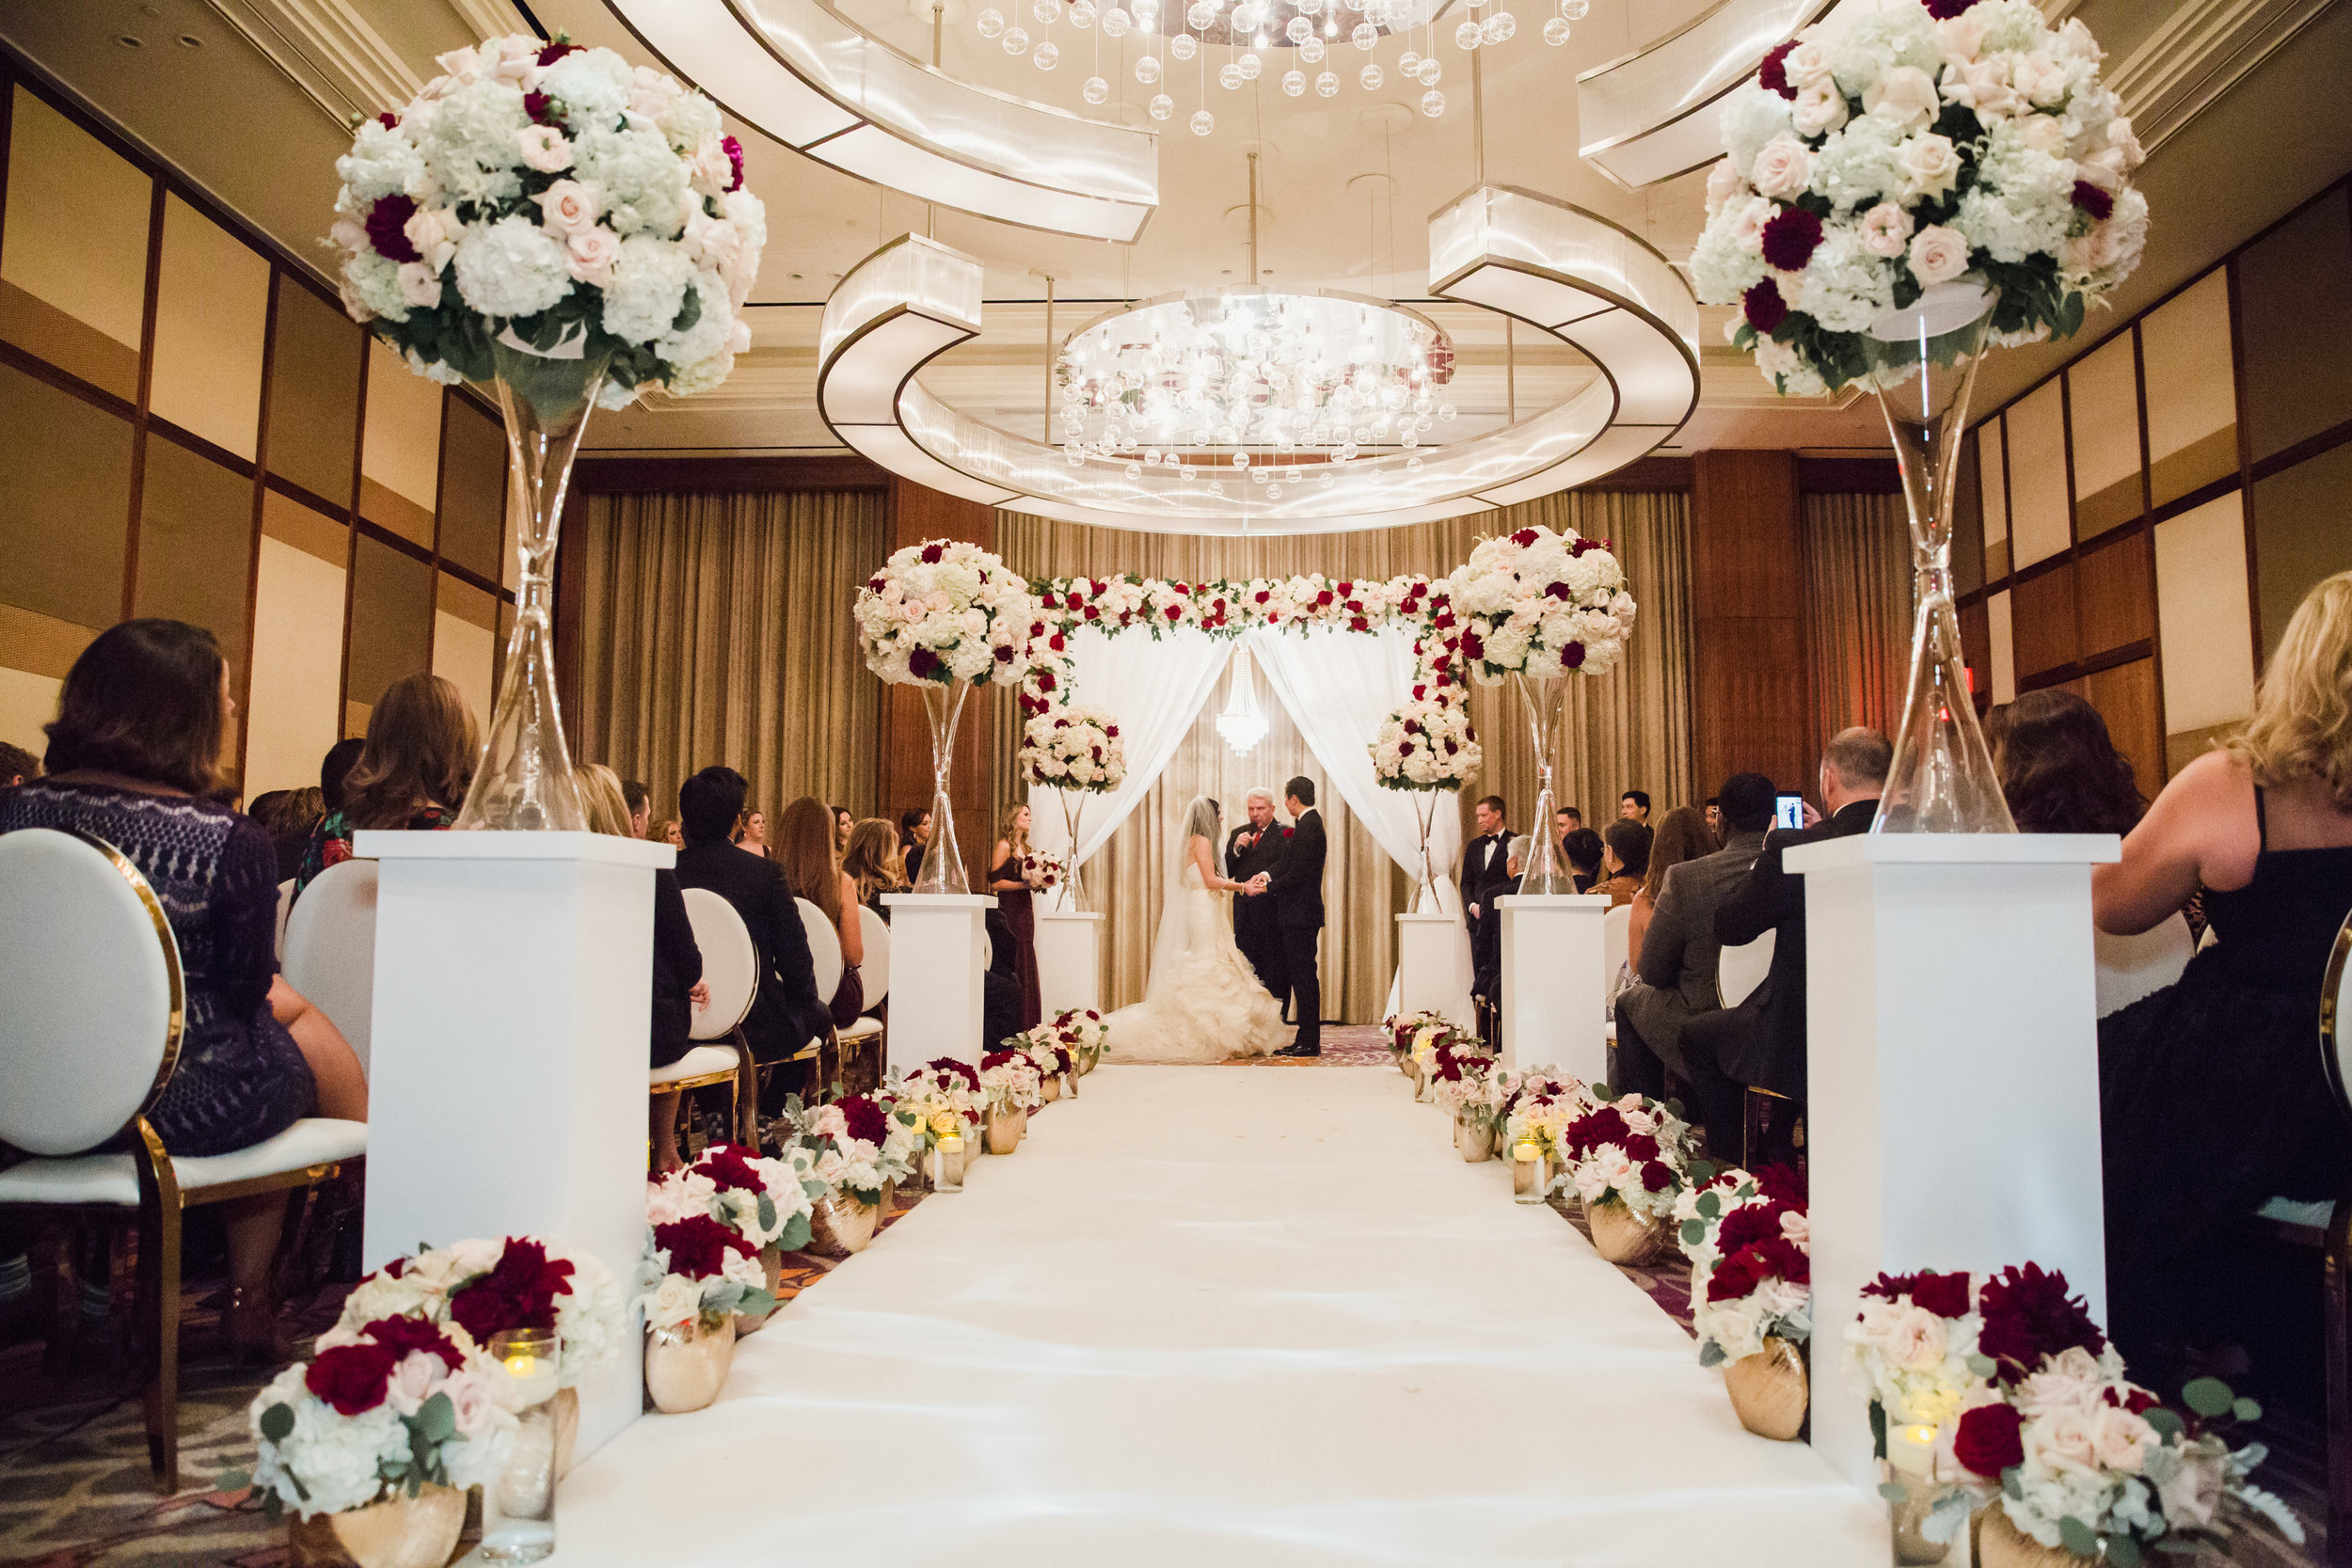 Wedding ceremony.Luxury wedding at the Mandarin Oriental with a color scheme of white, blush, and pops of wine red produced by Las Vegas Wedding Planner Andrea Eppolito with photos by Stephen Salazar Photography.